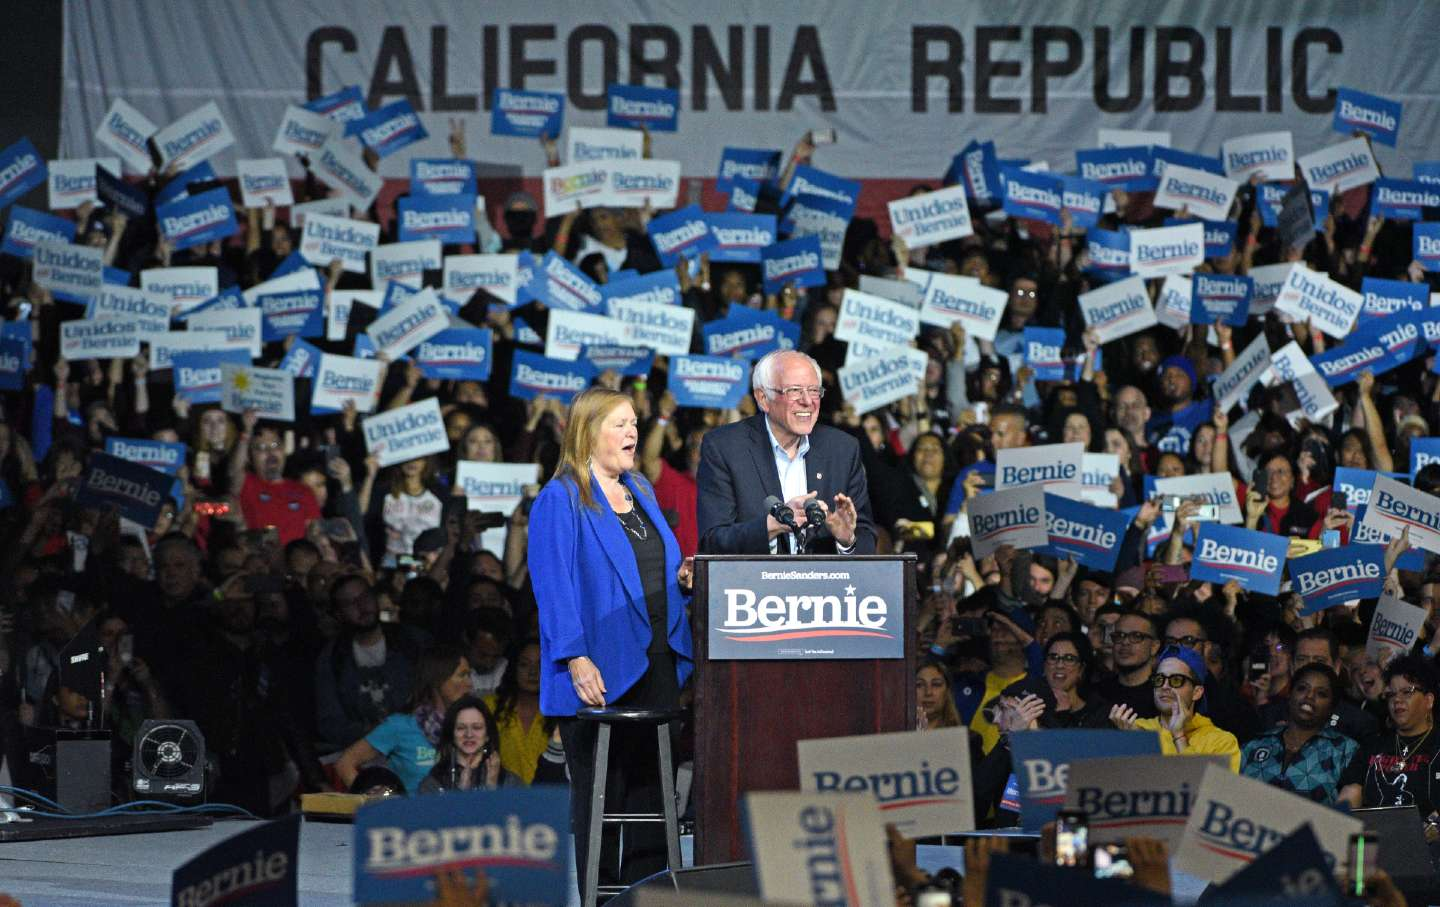 Jane and Bernie Sanders speaking to a large crowd in California.